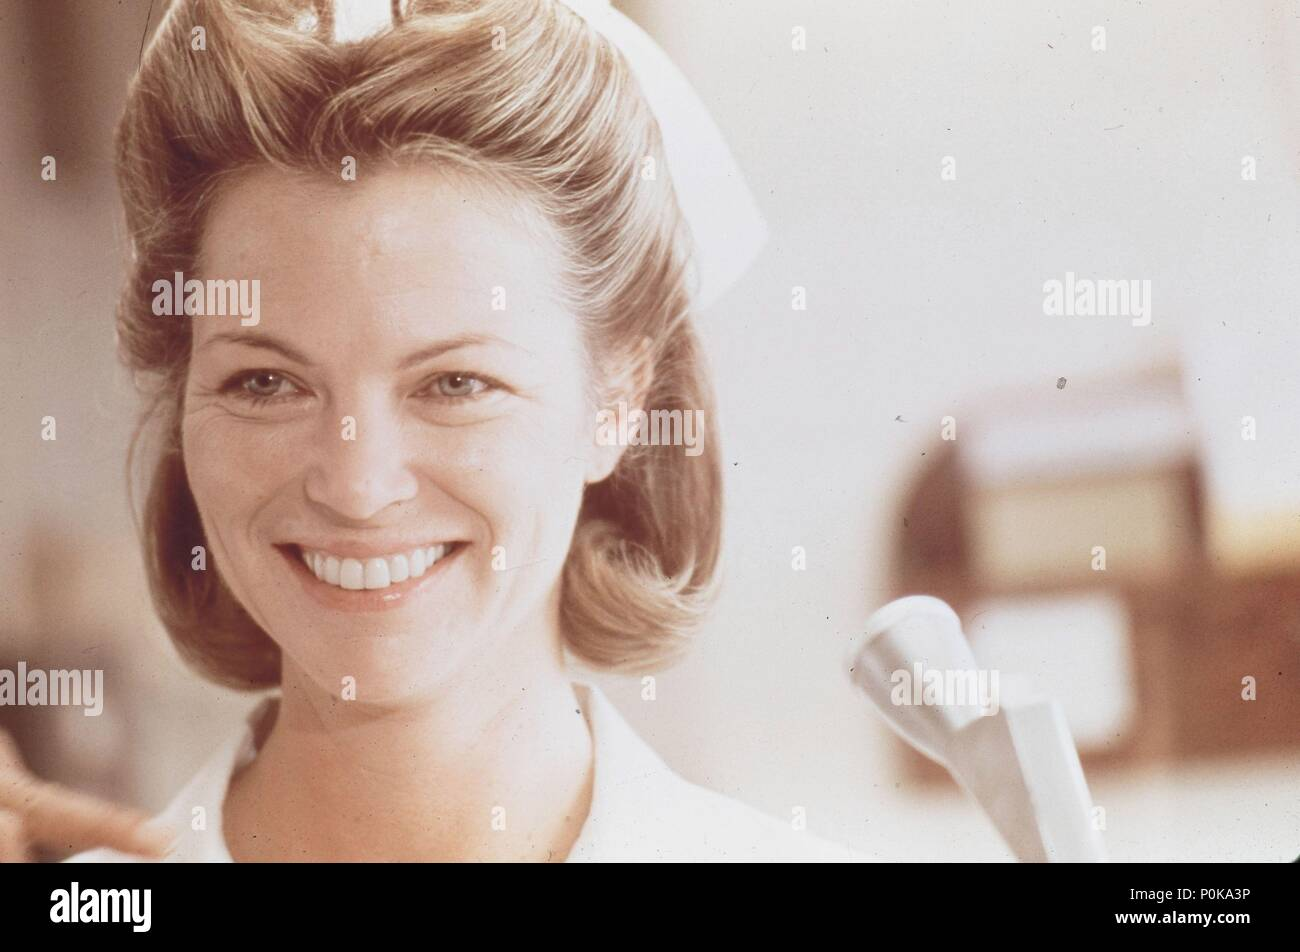 Original Film Title: ONE FLEW OVER THE CUCKOO'S NEST.  English Title: ONE FLEW OVER THE CUCKOO'S NEST.  Film Director: MILOS FORMAN.  Year: 1975.  Stars: LOUISE FLETCHER. Credit: UNITED ARTISTS / Album - Stock Image